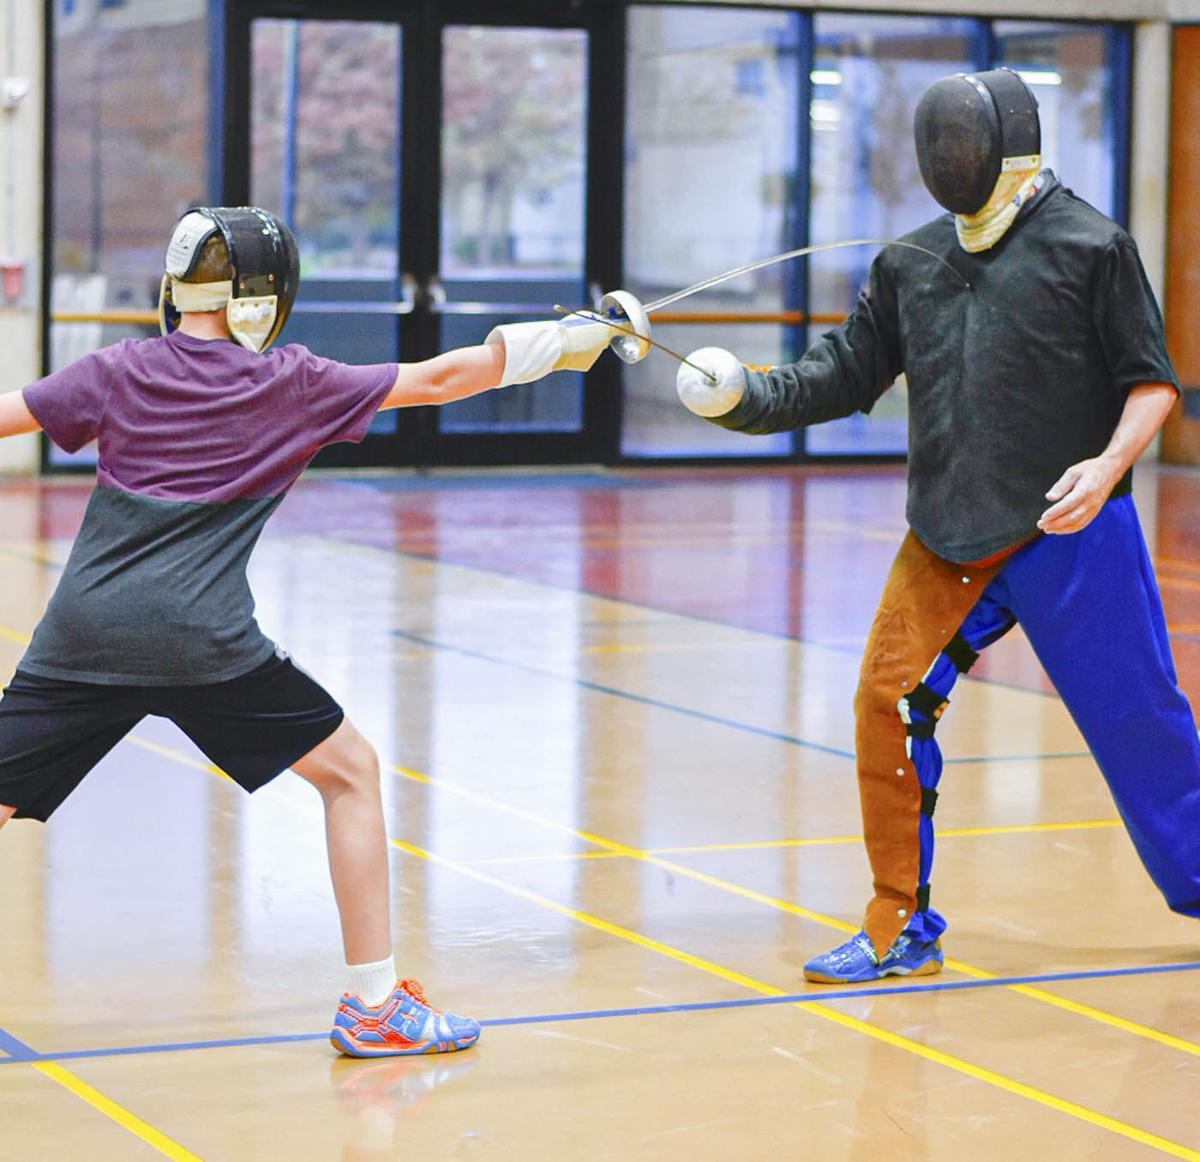 BC Fencing Workout